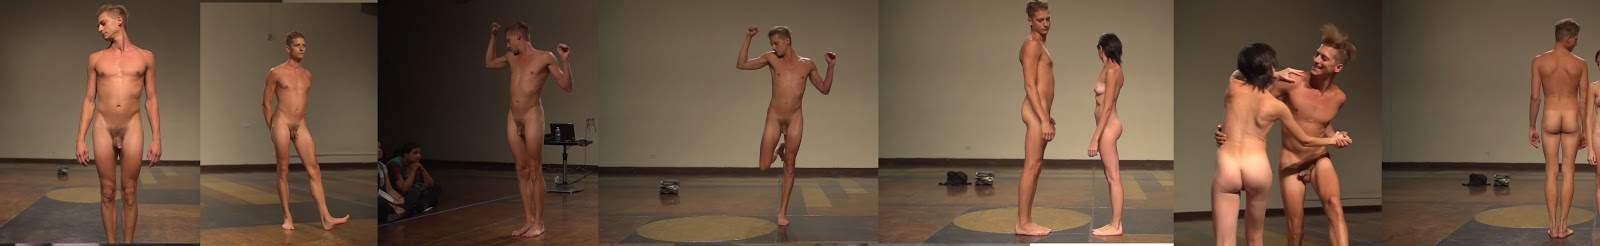 naked hunk dancing on stage